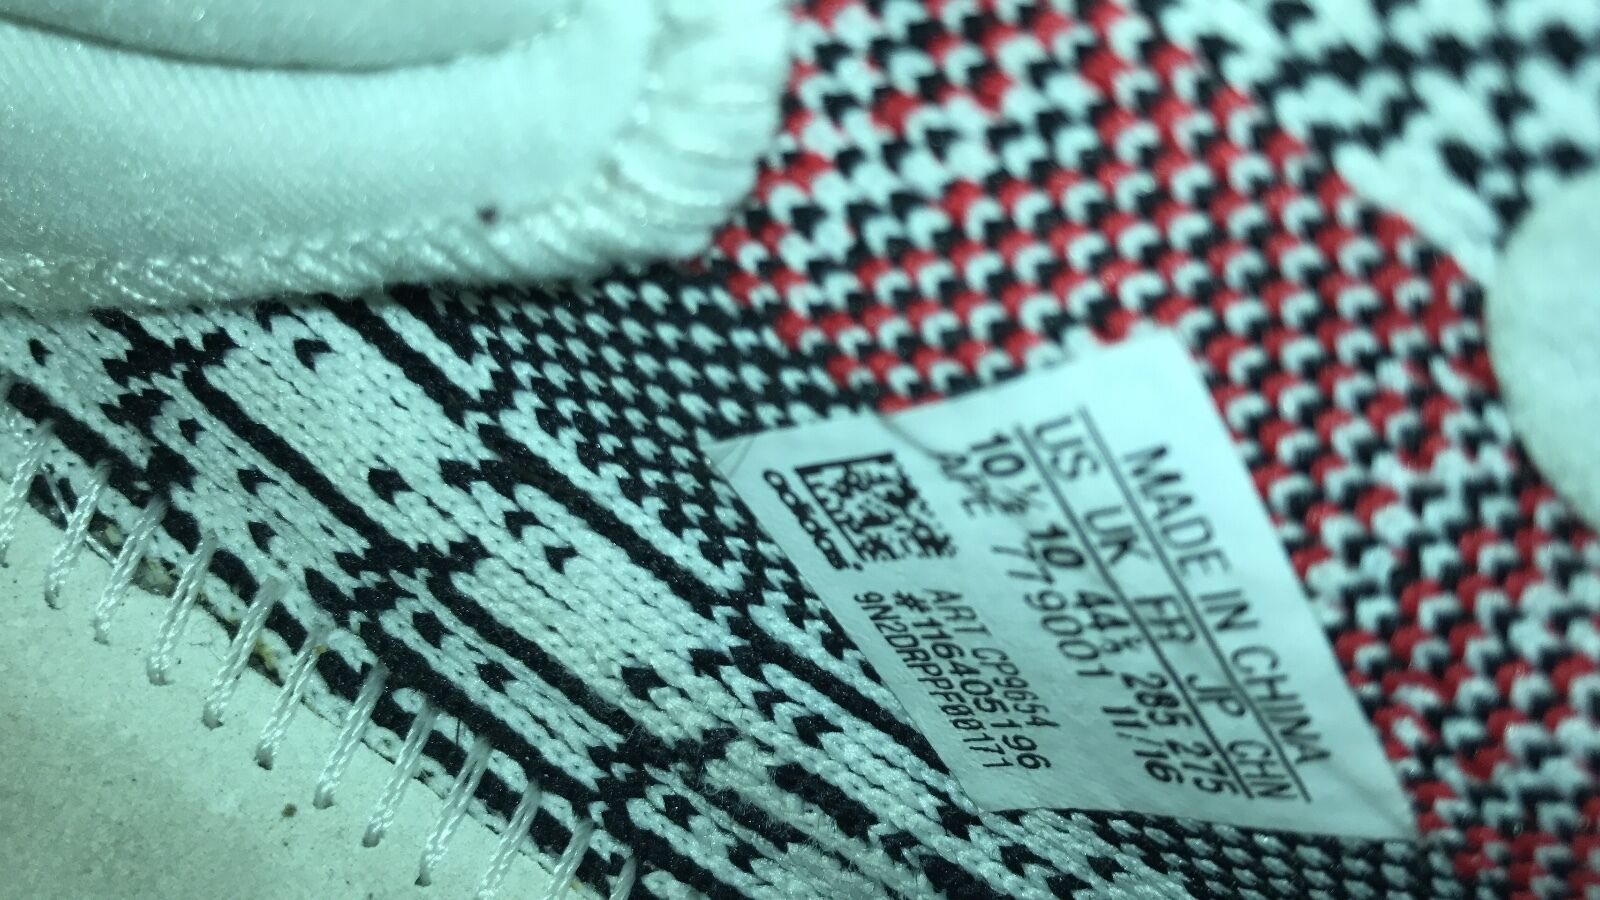 963d0546938ef Yeezy Boost 350 Zebra V2 Size 10.5 100% Authentic. 2001 NIKE ...